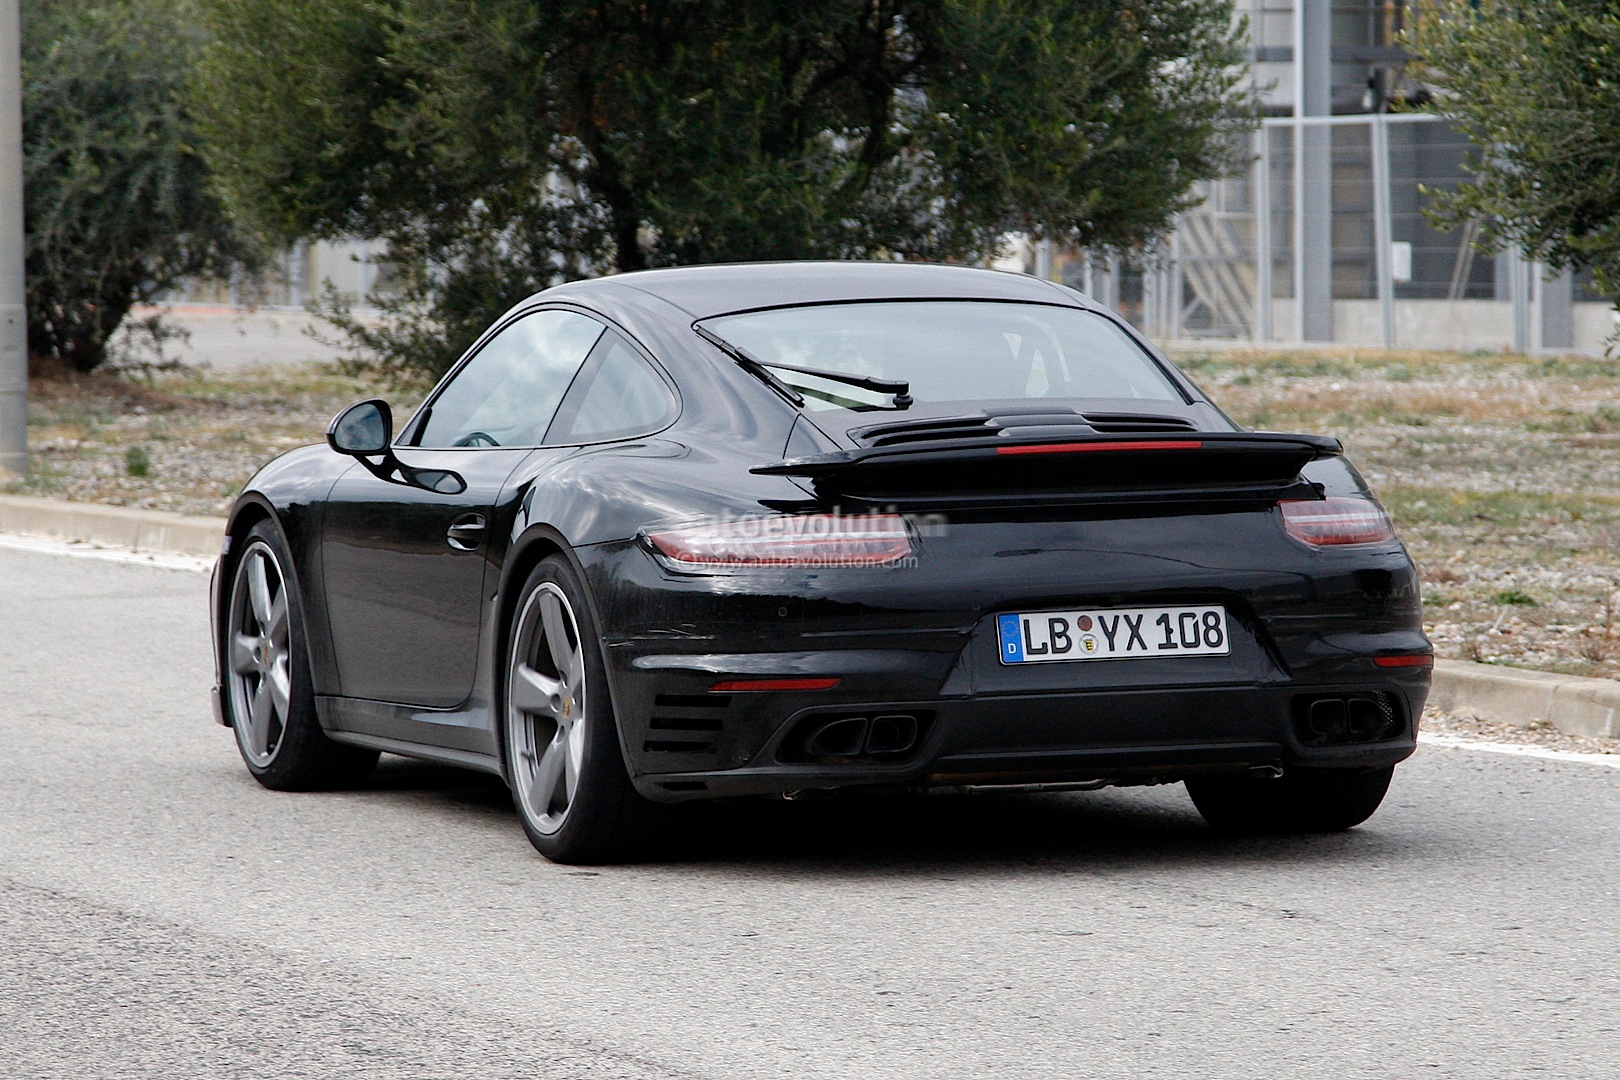 thread 2015 porsche 911 turbo getting facelift - 2015 Porsche 911 Turbo